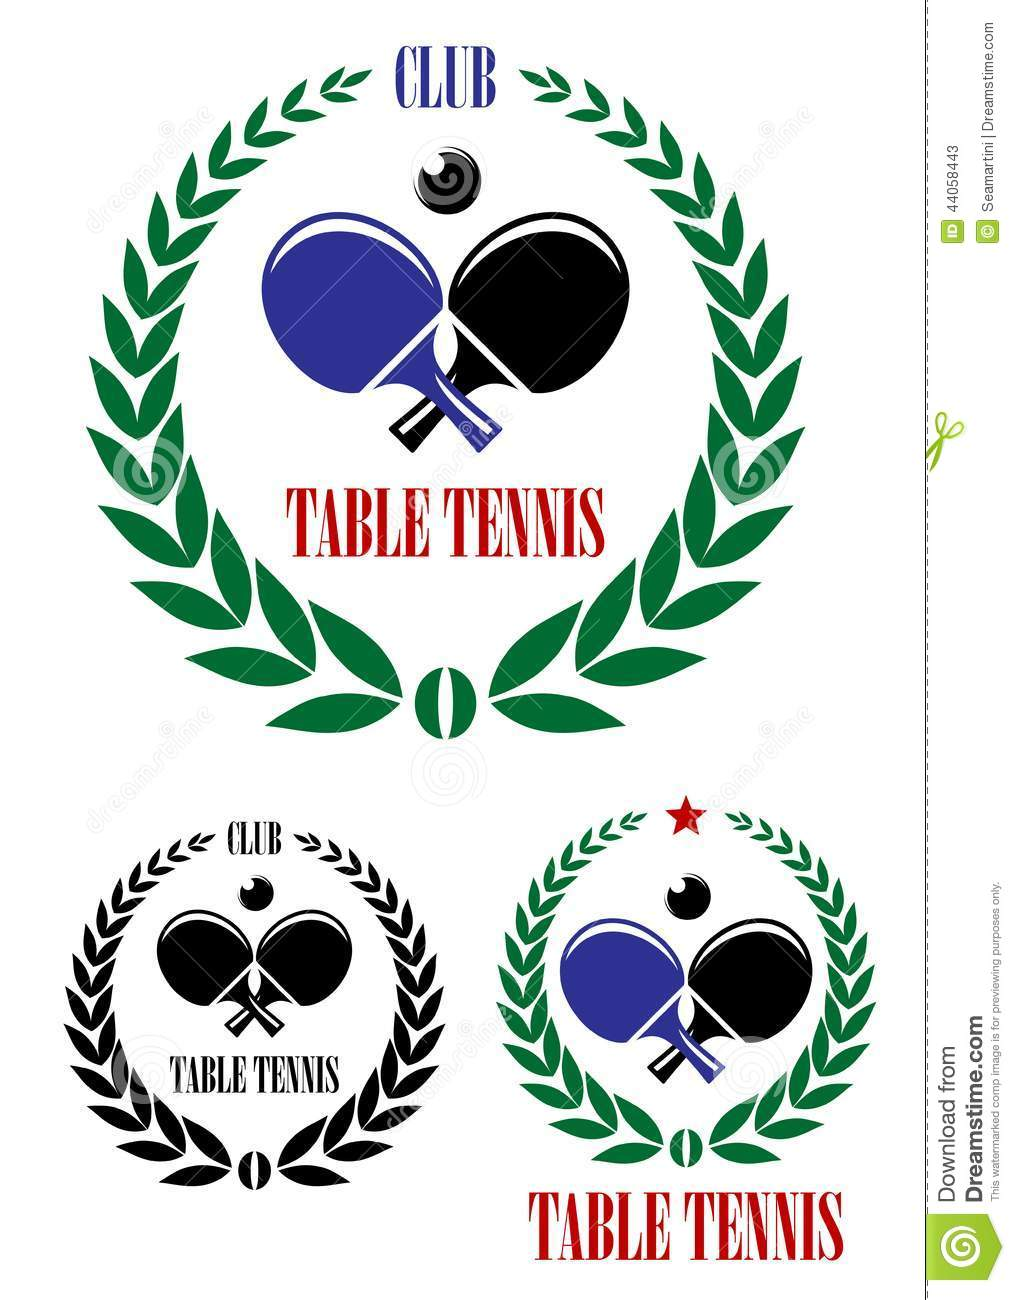 Ping pong table background - Table Tennis Emblems And Symbols Stock Vector Image